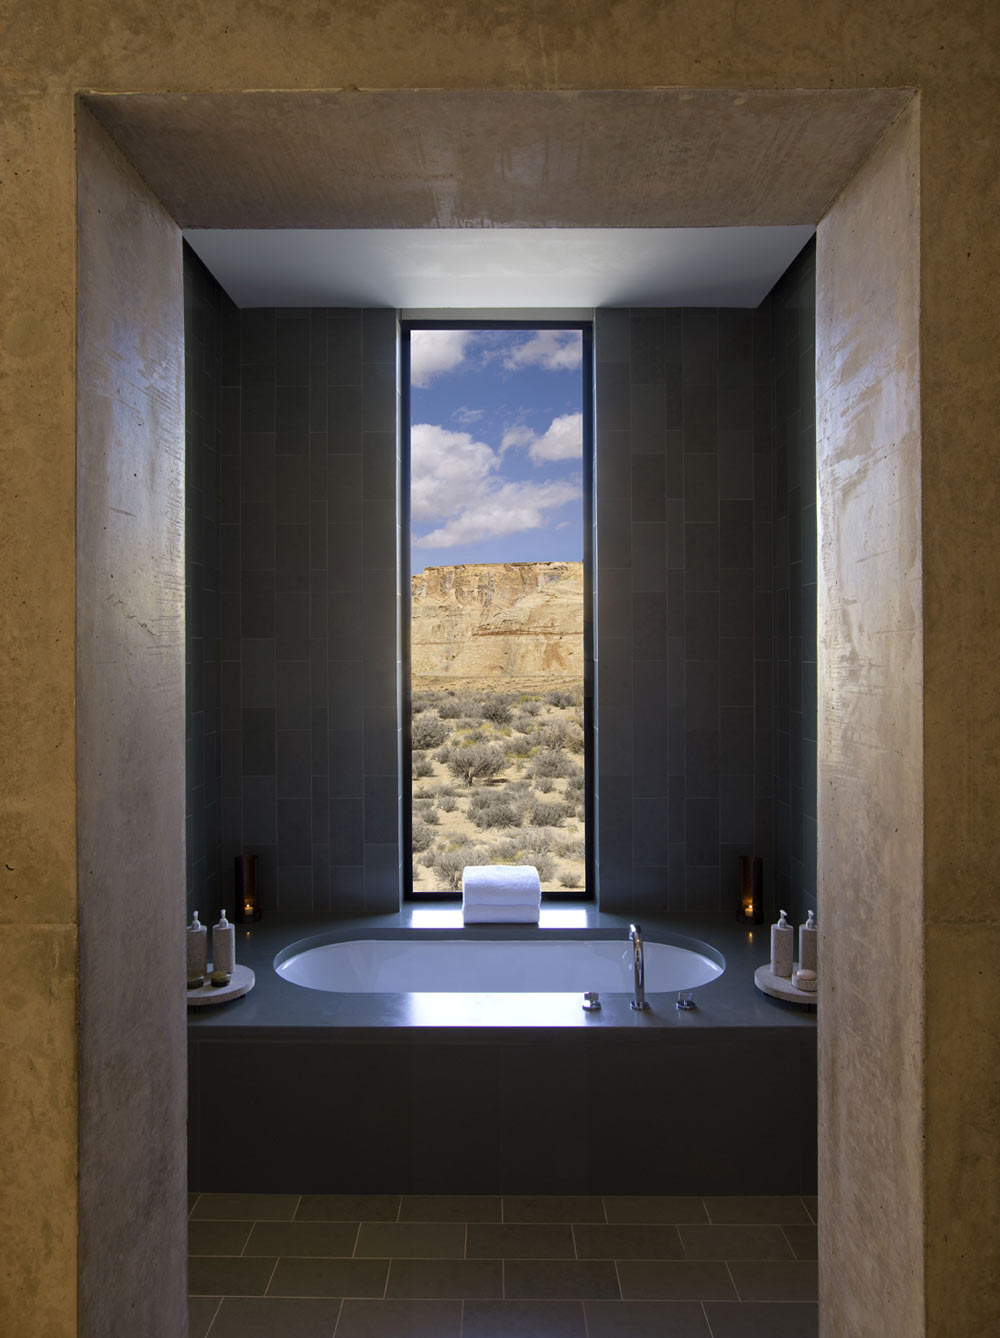 View from the bathroom of a Mesa View Suite at Amangiri in Canyon Point, Southern Utah courtesy of Amanresorts